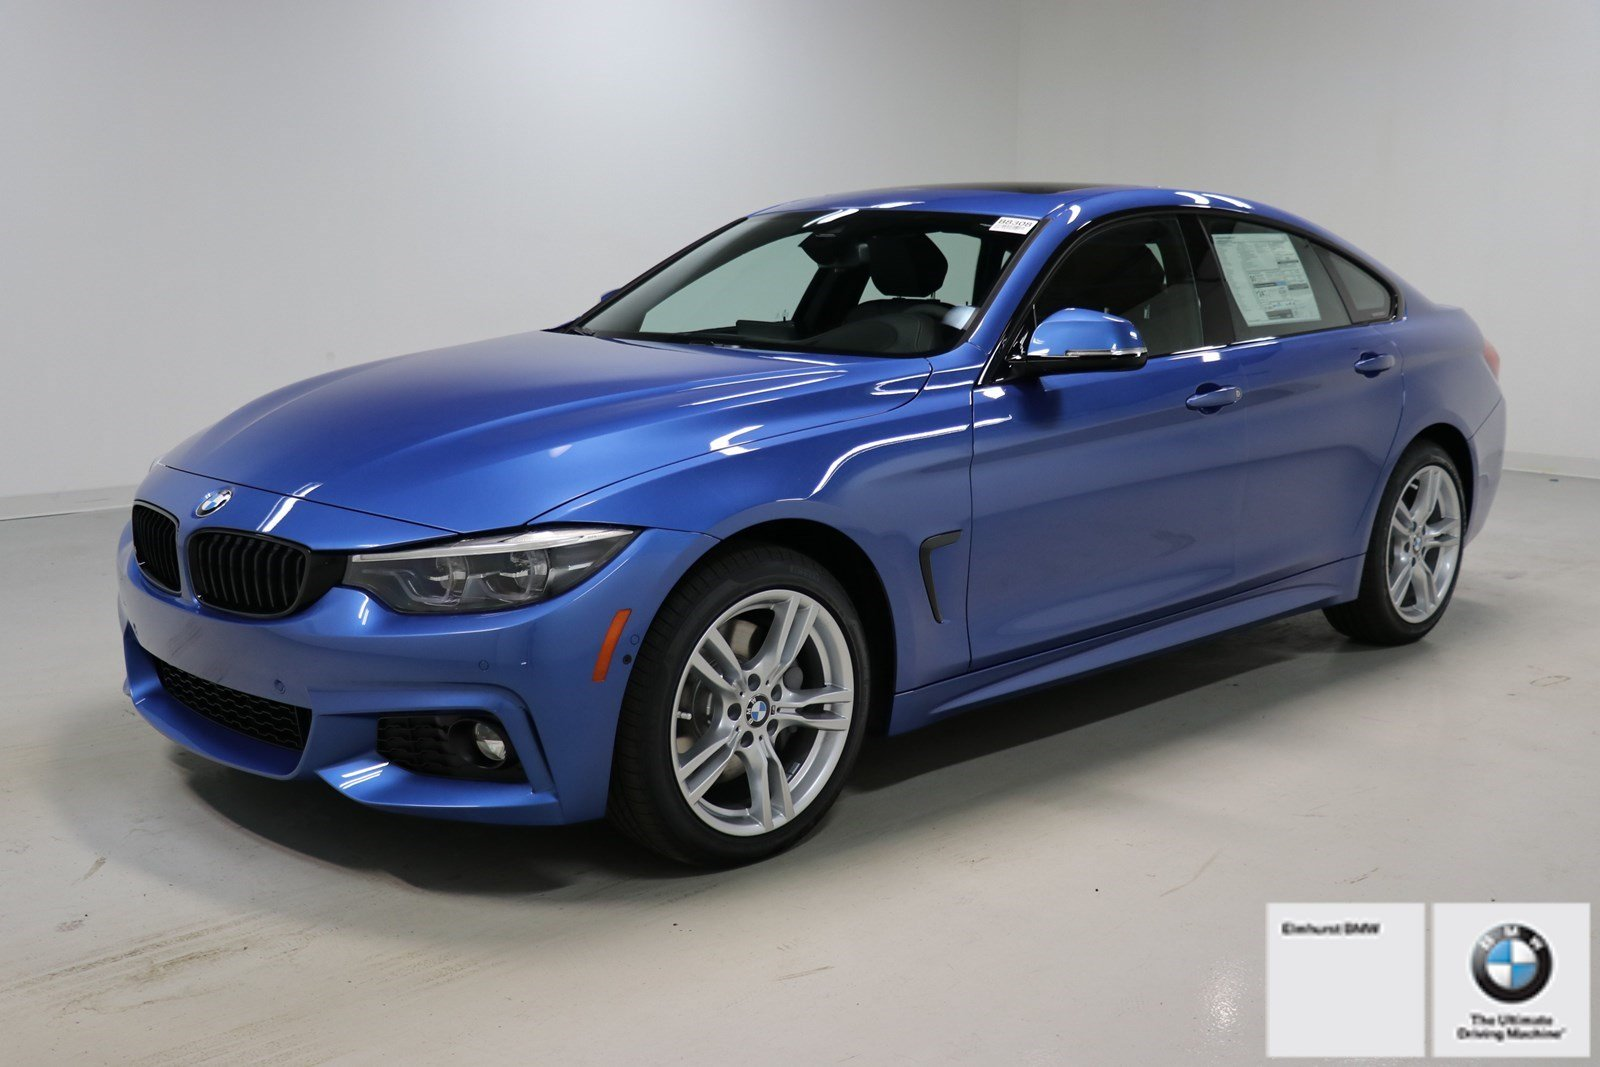 New 2019 Bmw 4 Series 440i Xdrive Gran Coupe Hatchback In Elmhurst B8308 Elmhurst Bmw